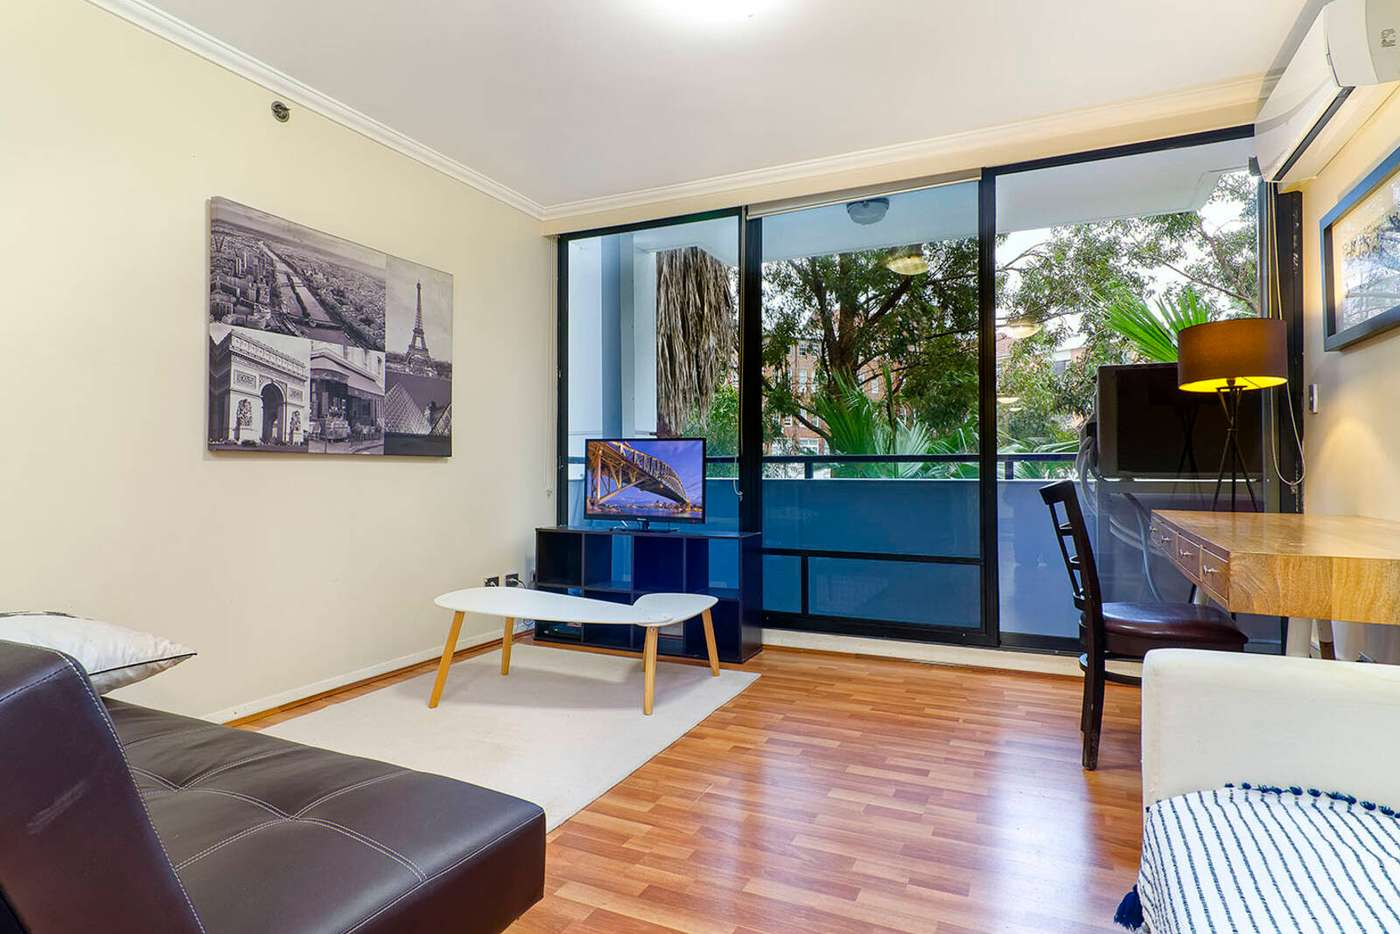 Main view of Homely studio listing, 15a/7 Herbert Street, St Leonards NSW 2065